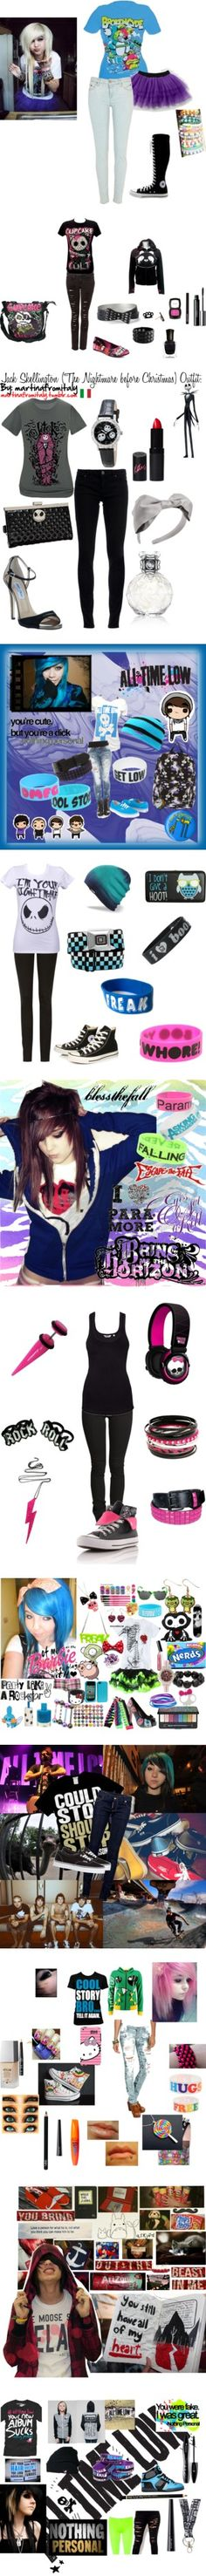 """Scene/Emo/Bands/Glamour Kills :3"" by ninja-stealthhh ❤ mliked on Polyvore"